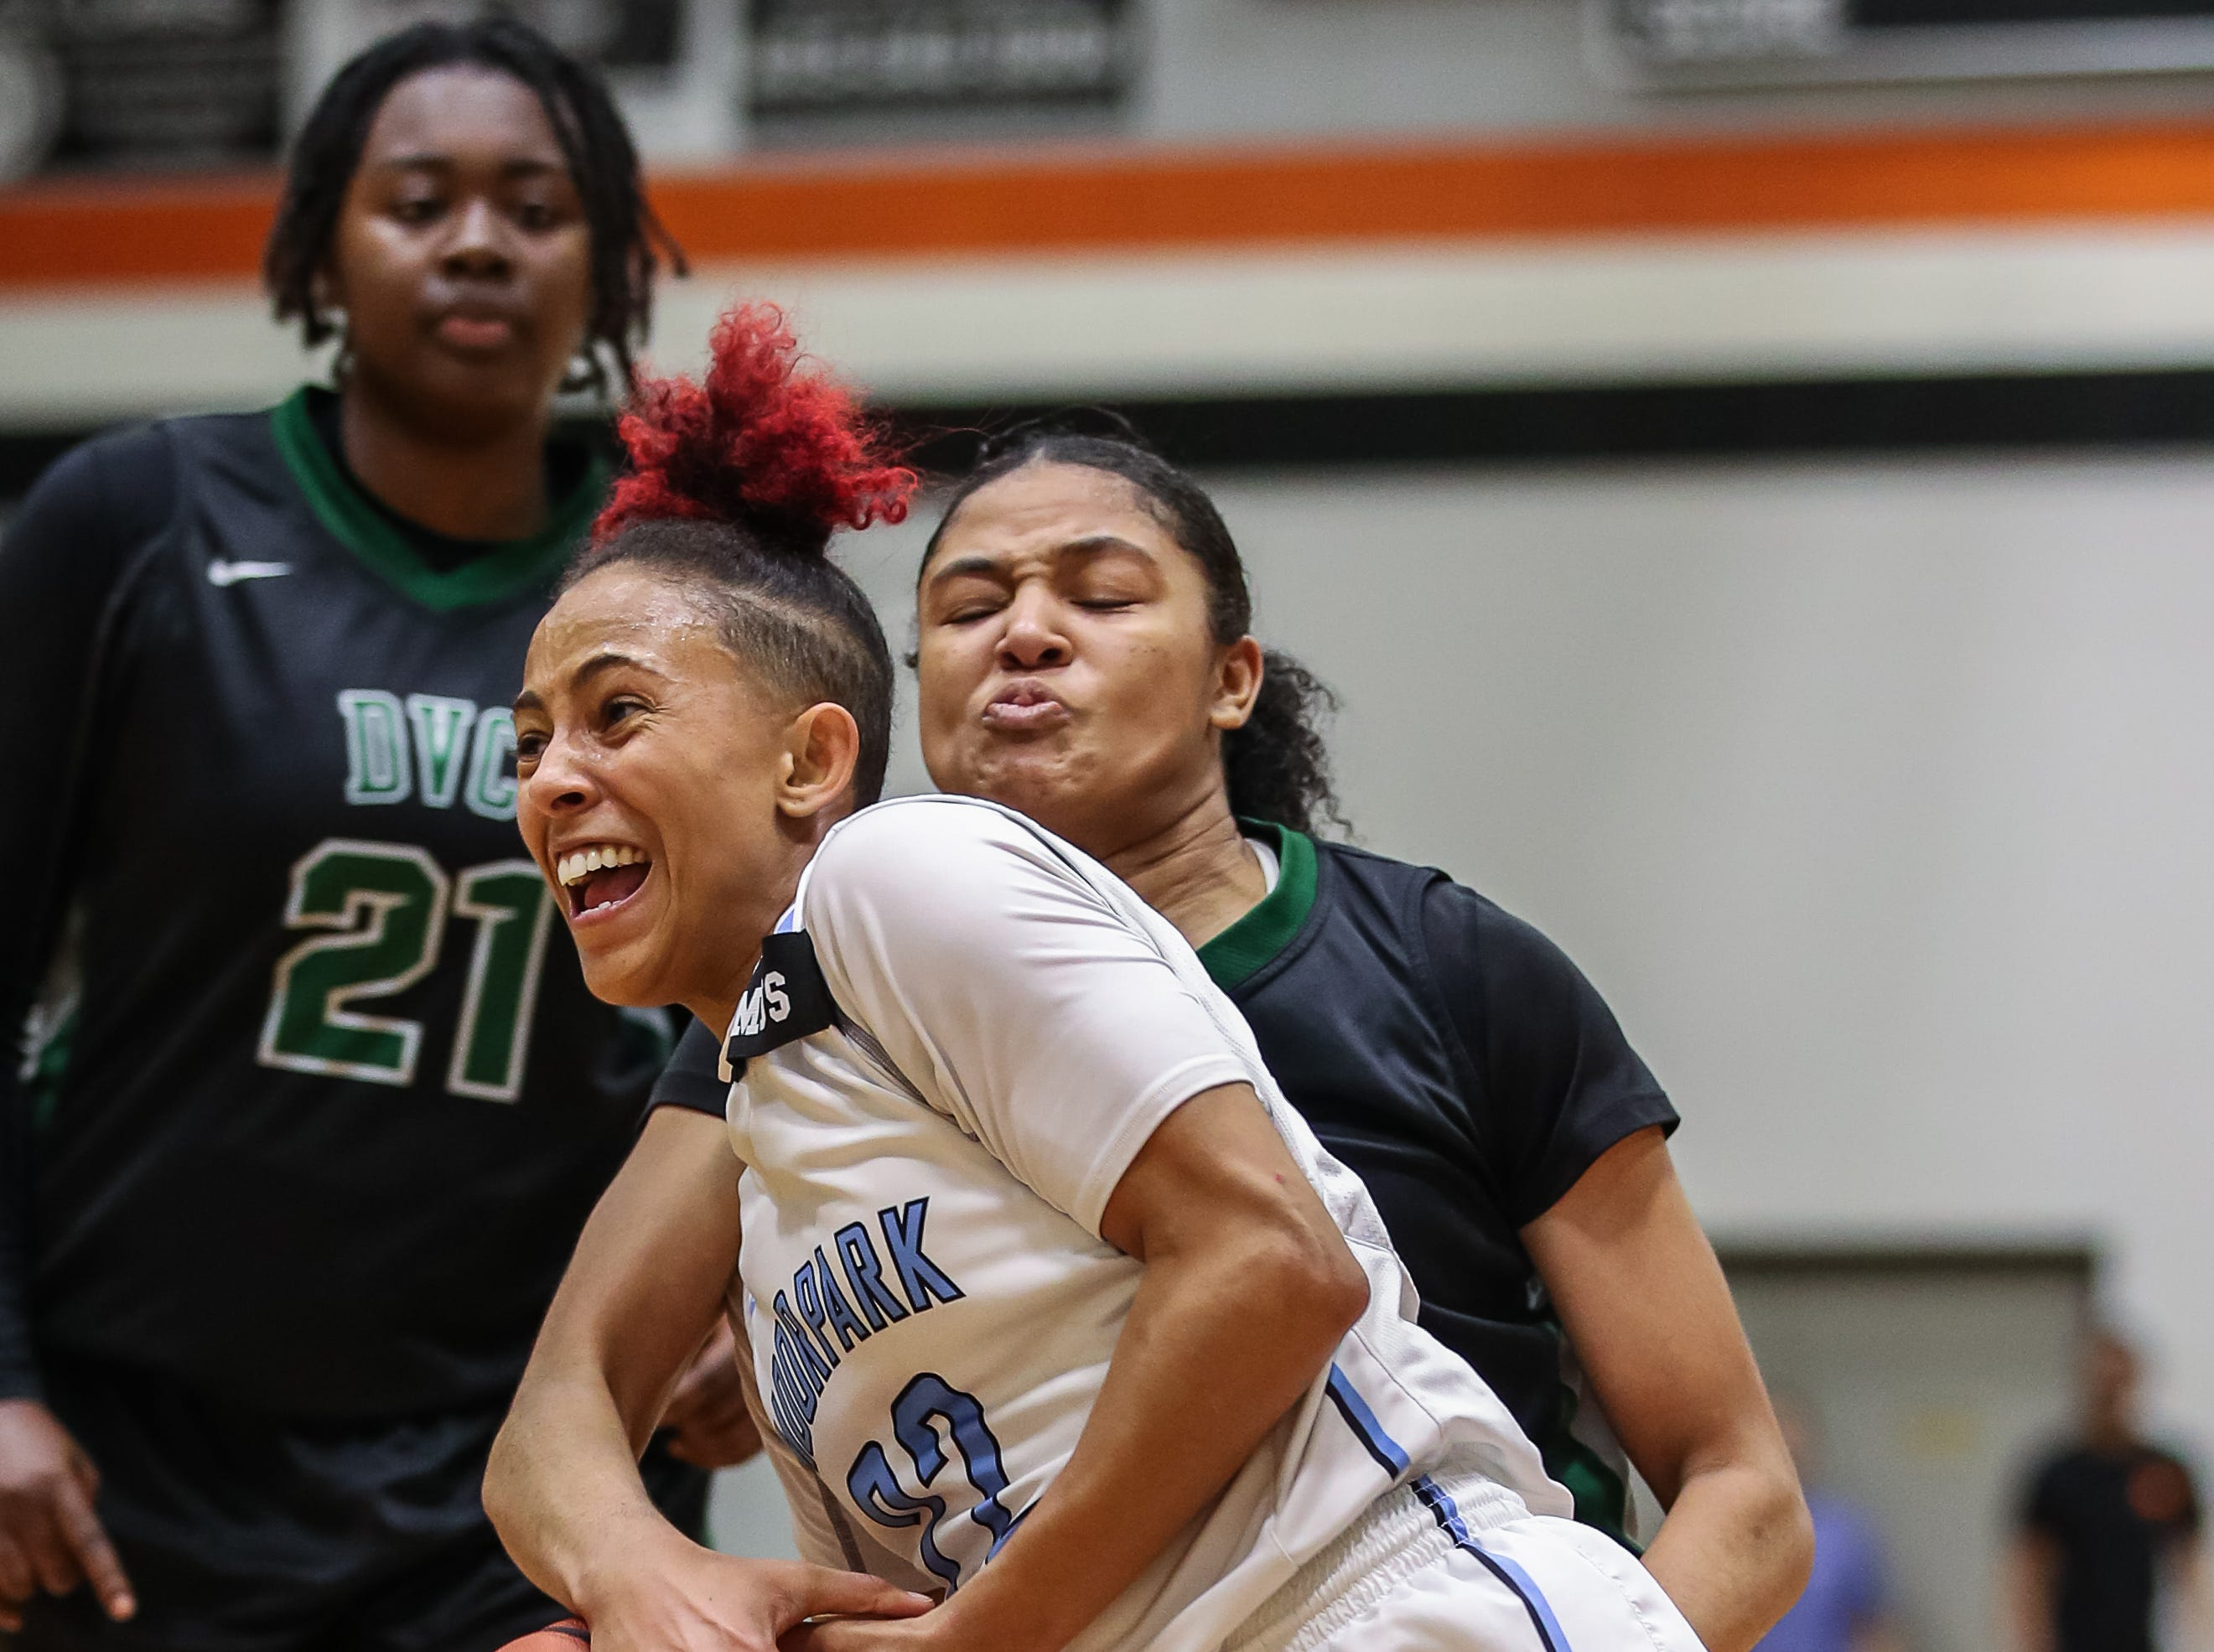 Moorpark College's freshman Breanna Calhoun is stripped of the ball by a Diablo Valley College defender during the CCCAA state championship game at Ventura College on Sunday. Moorpark lost, 68-61.